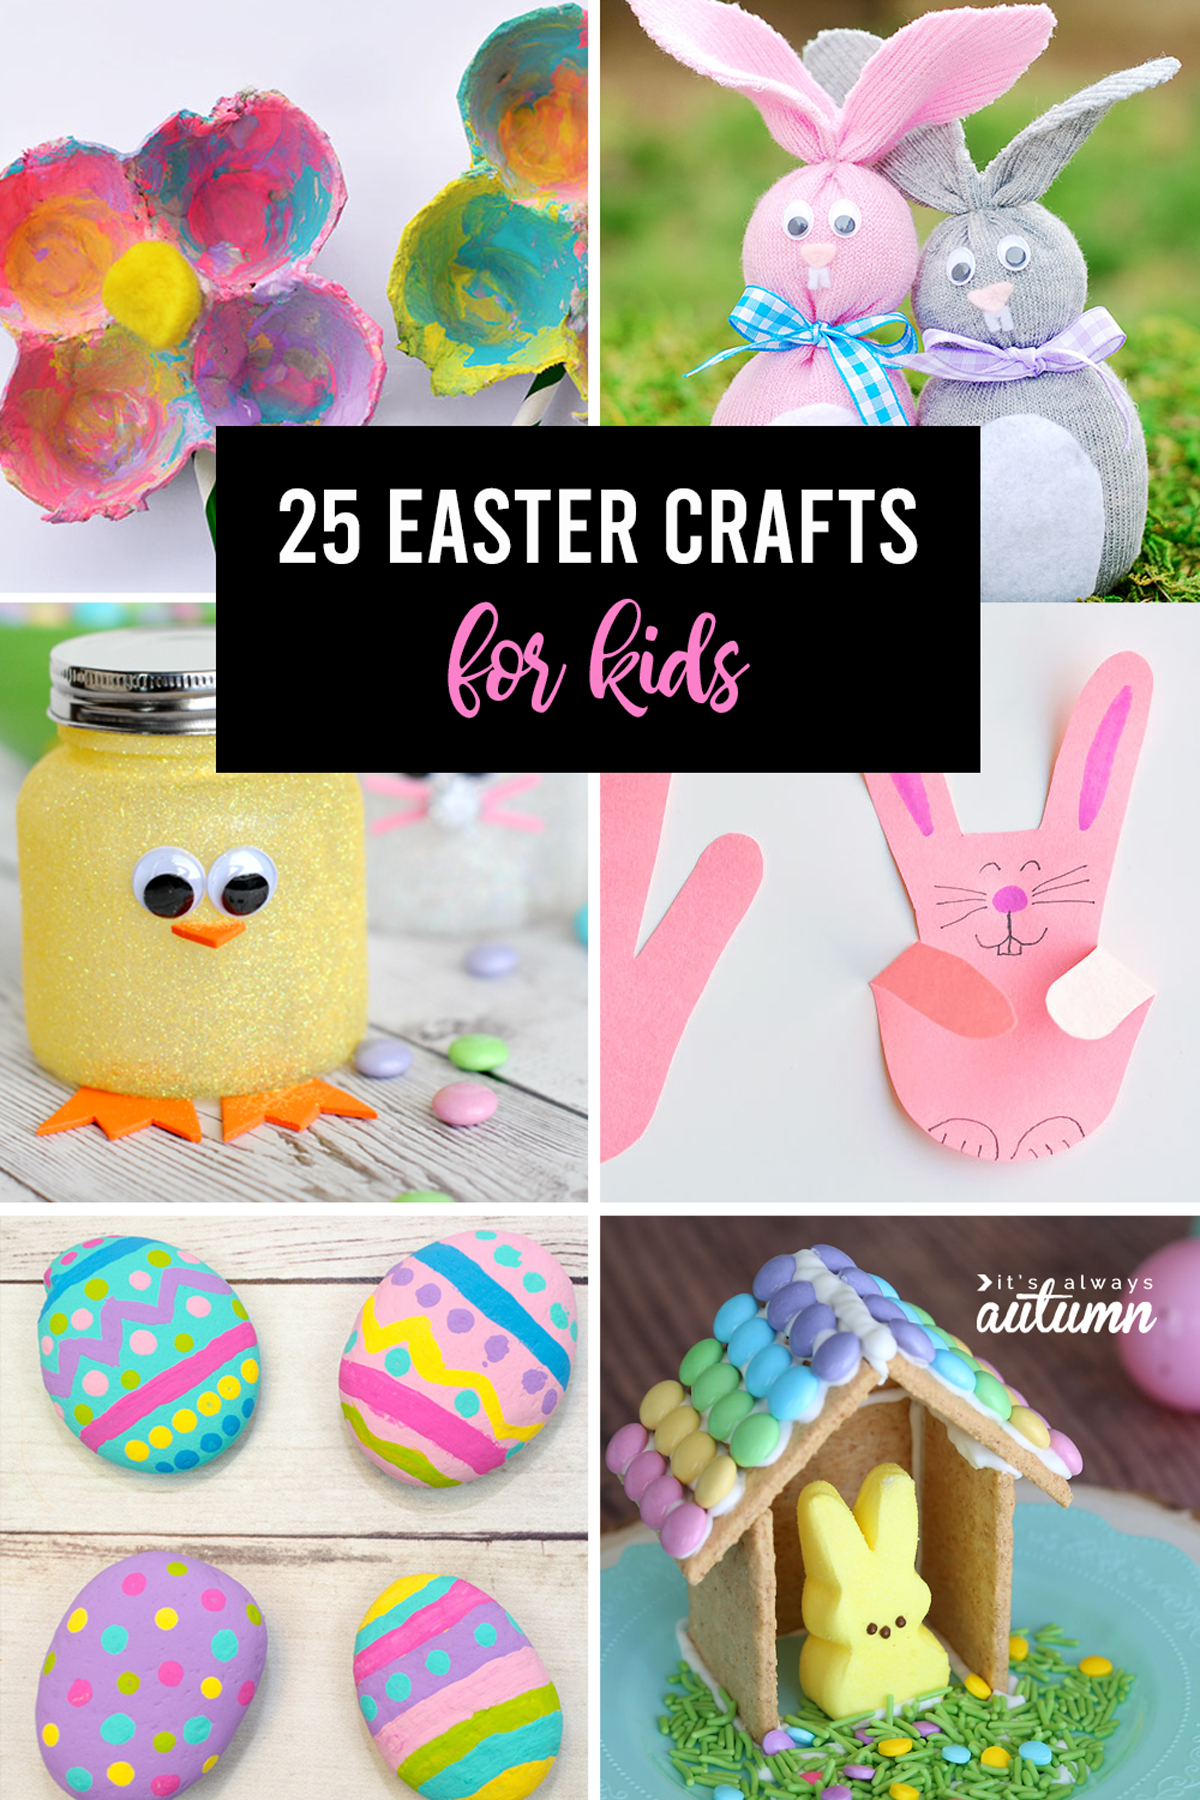 Collage of 25 Easter crafts for kids